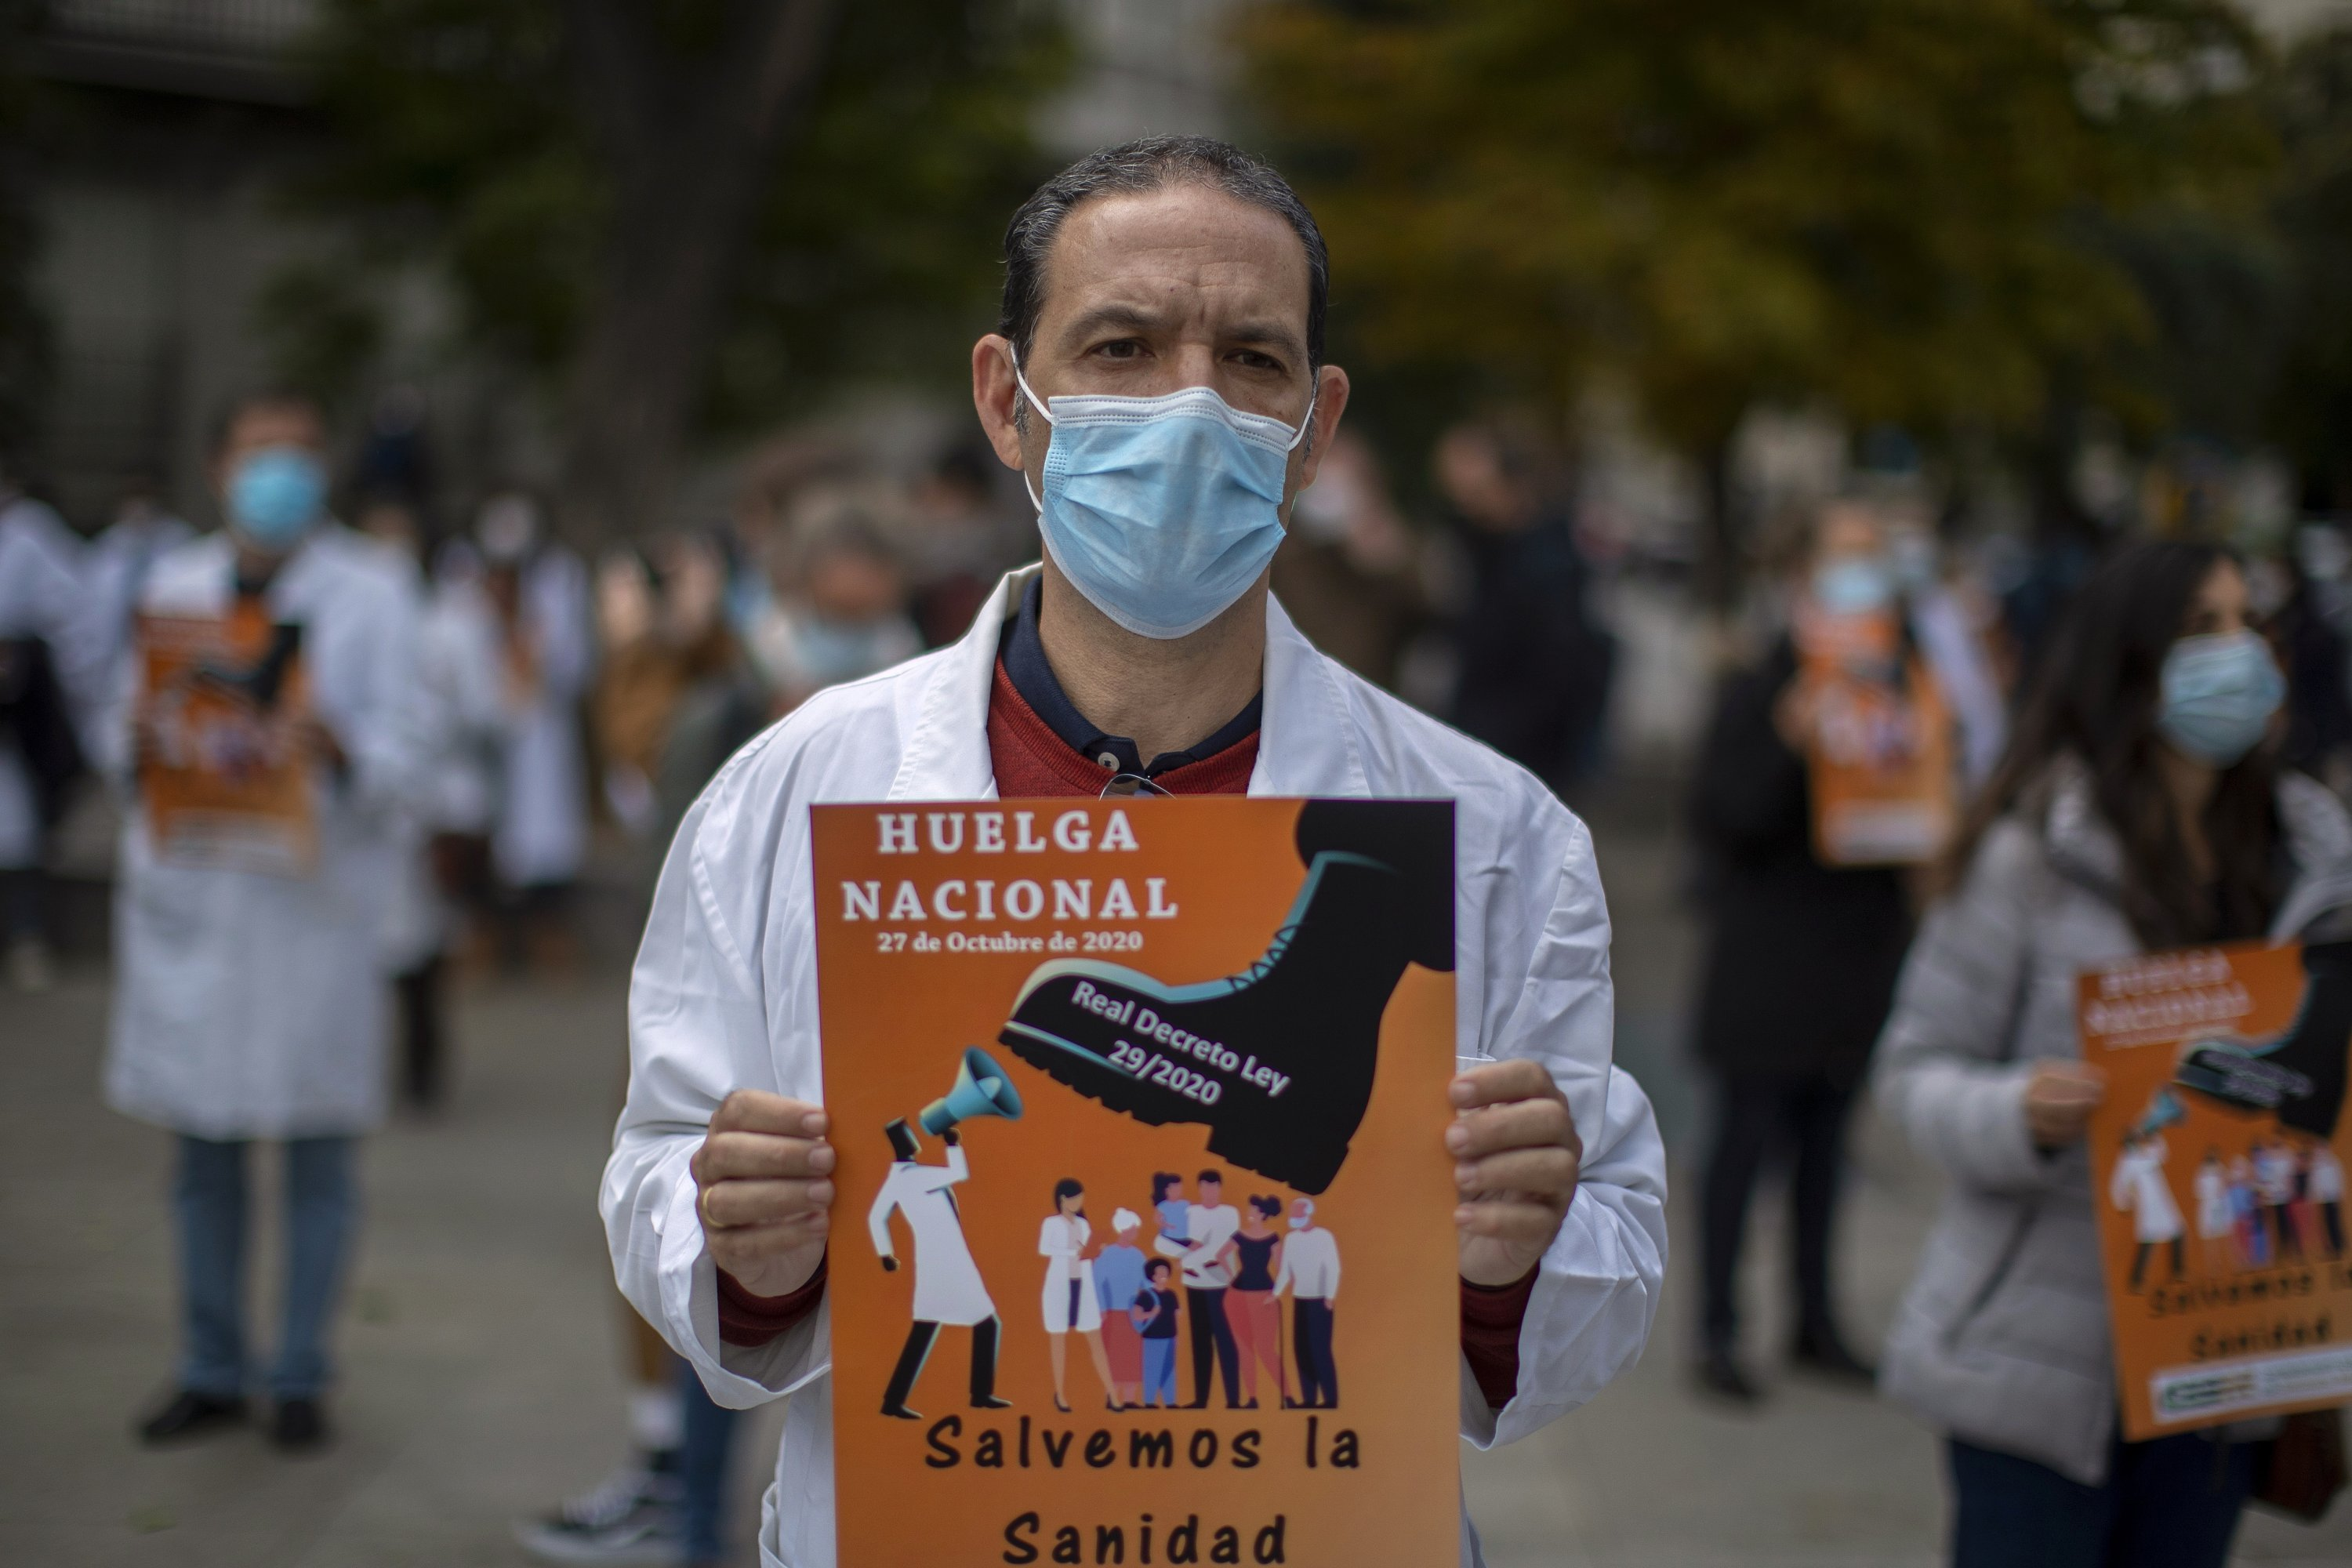 Spanish Doctors Stage First Walkout In 25 Years To Protest Government's New COVID-19 Order (zerohedge.com)